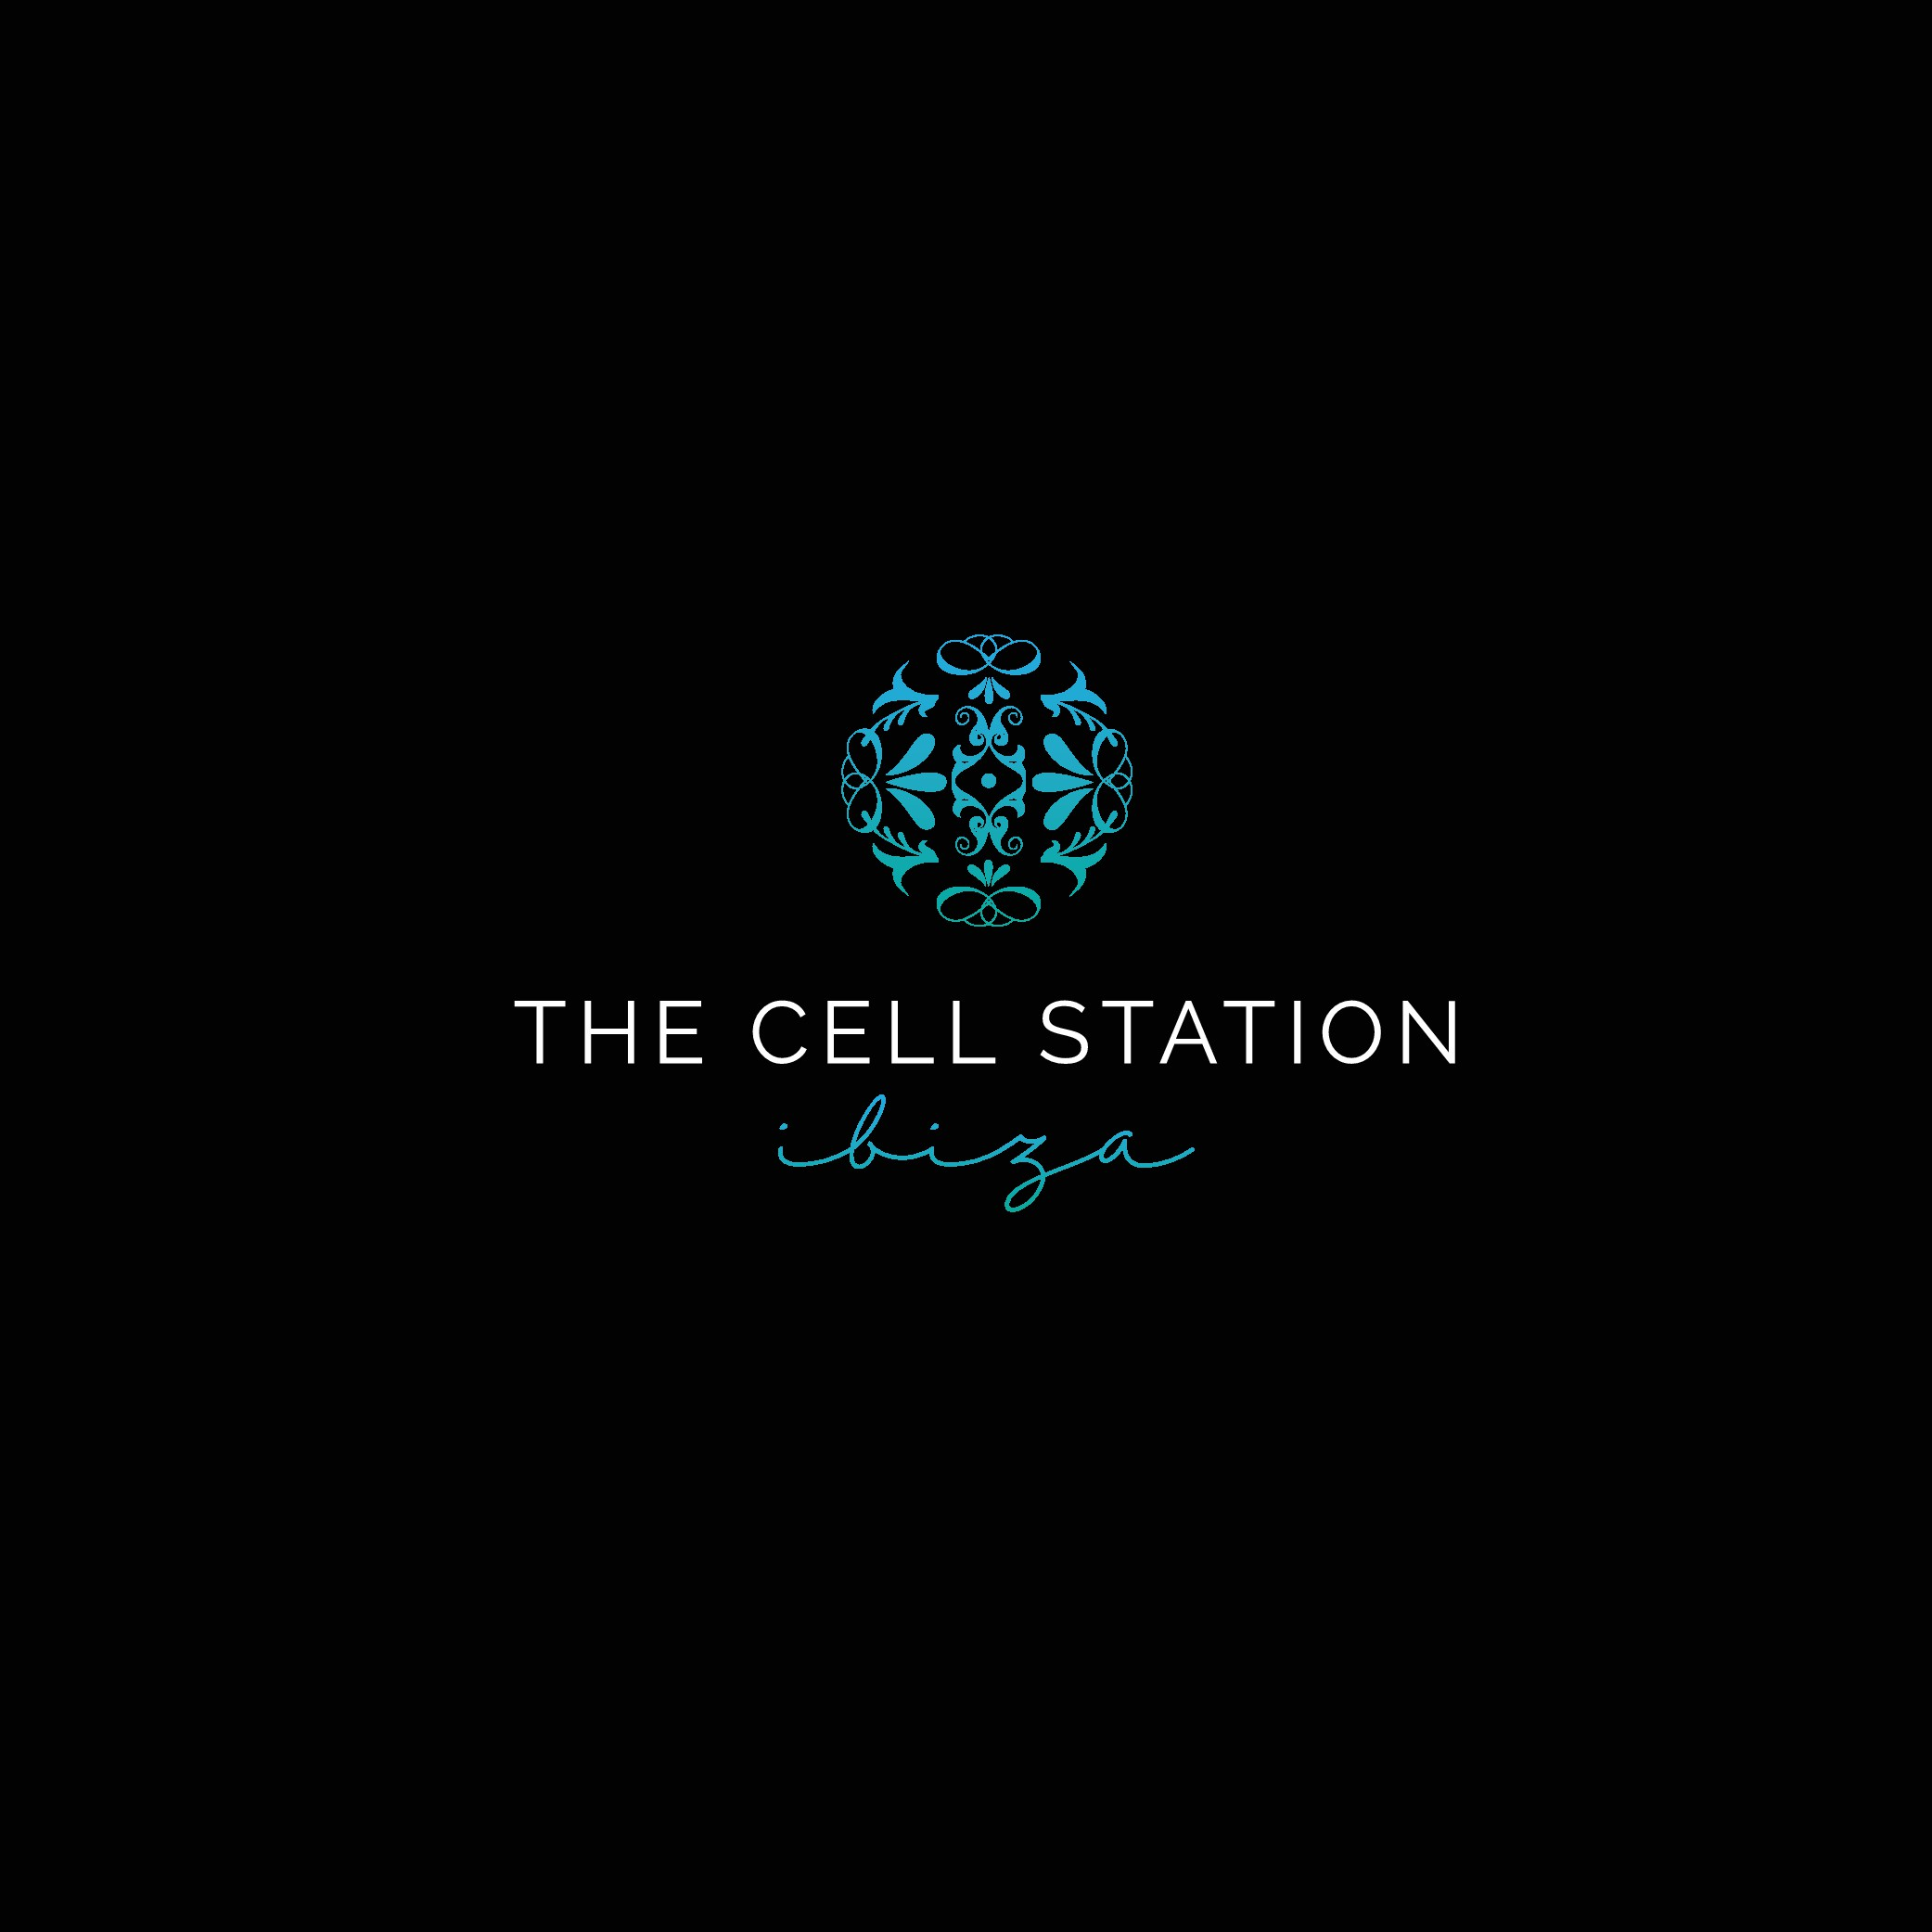 """the holistic treatment system  """" The Cell Station """" Ibiza needs a feel good logo"""